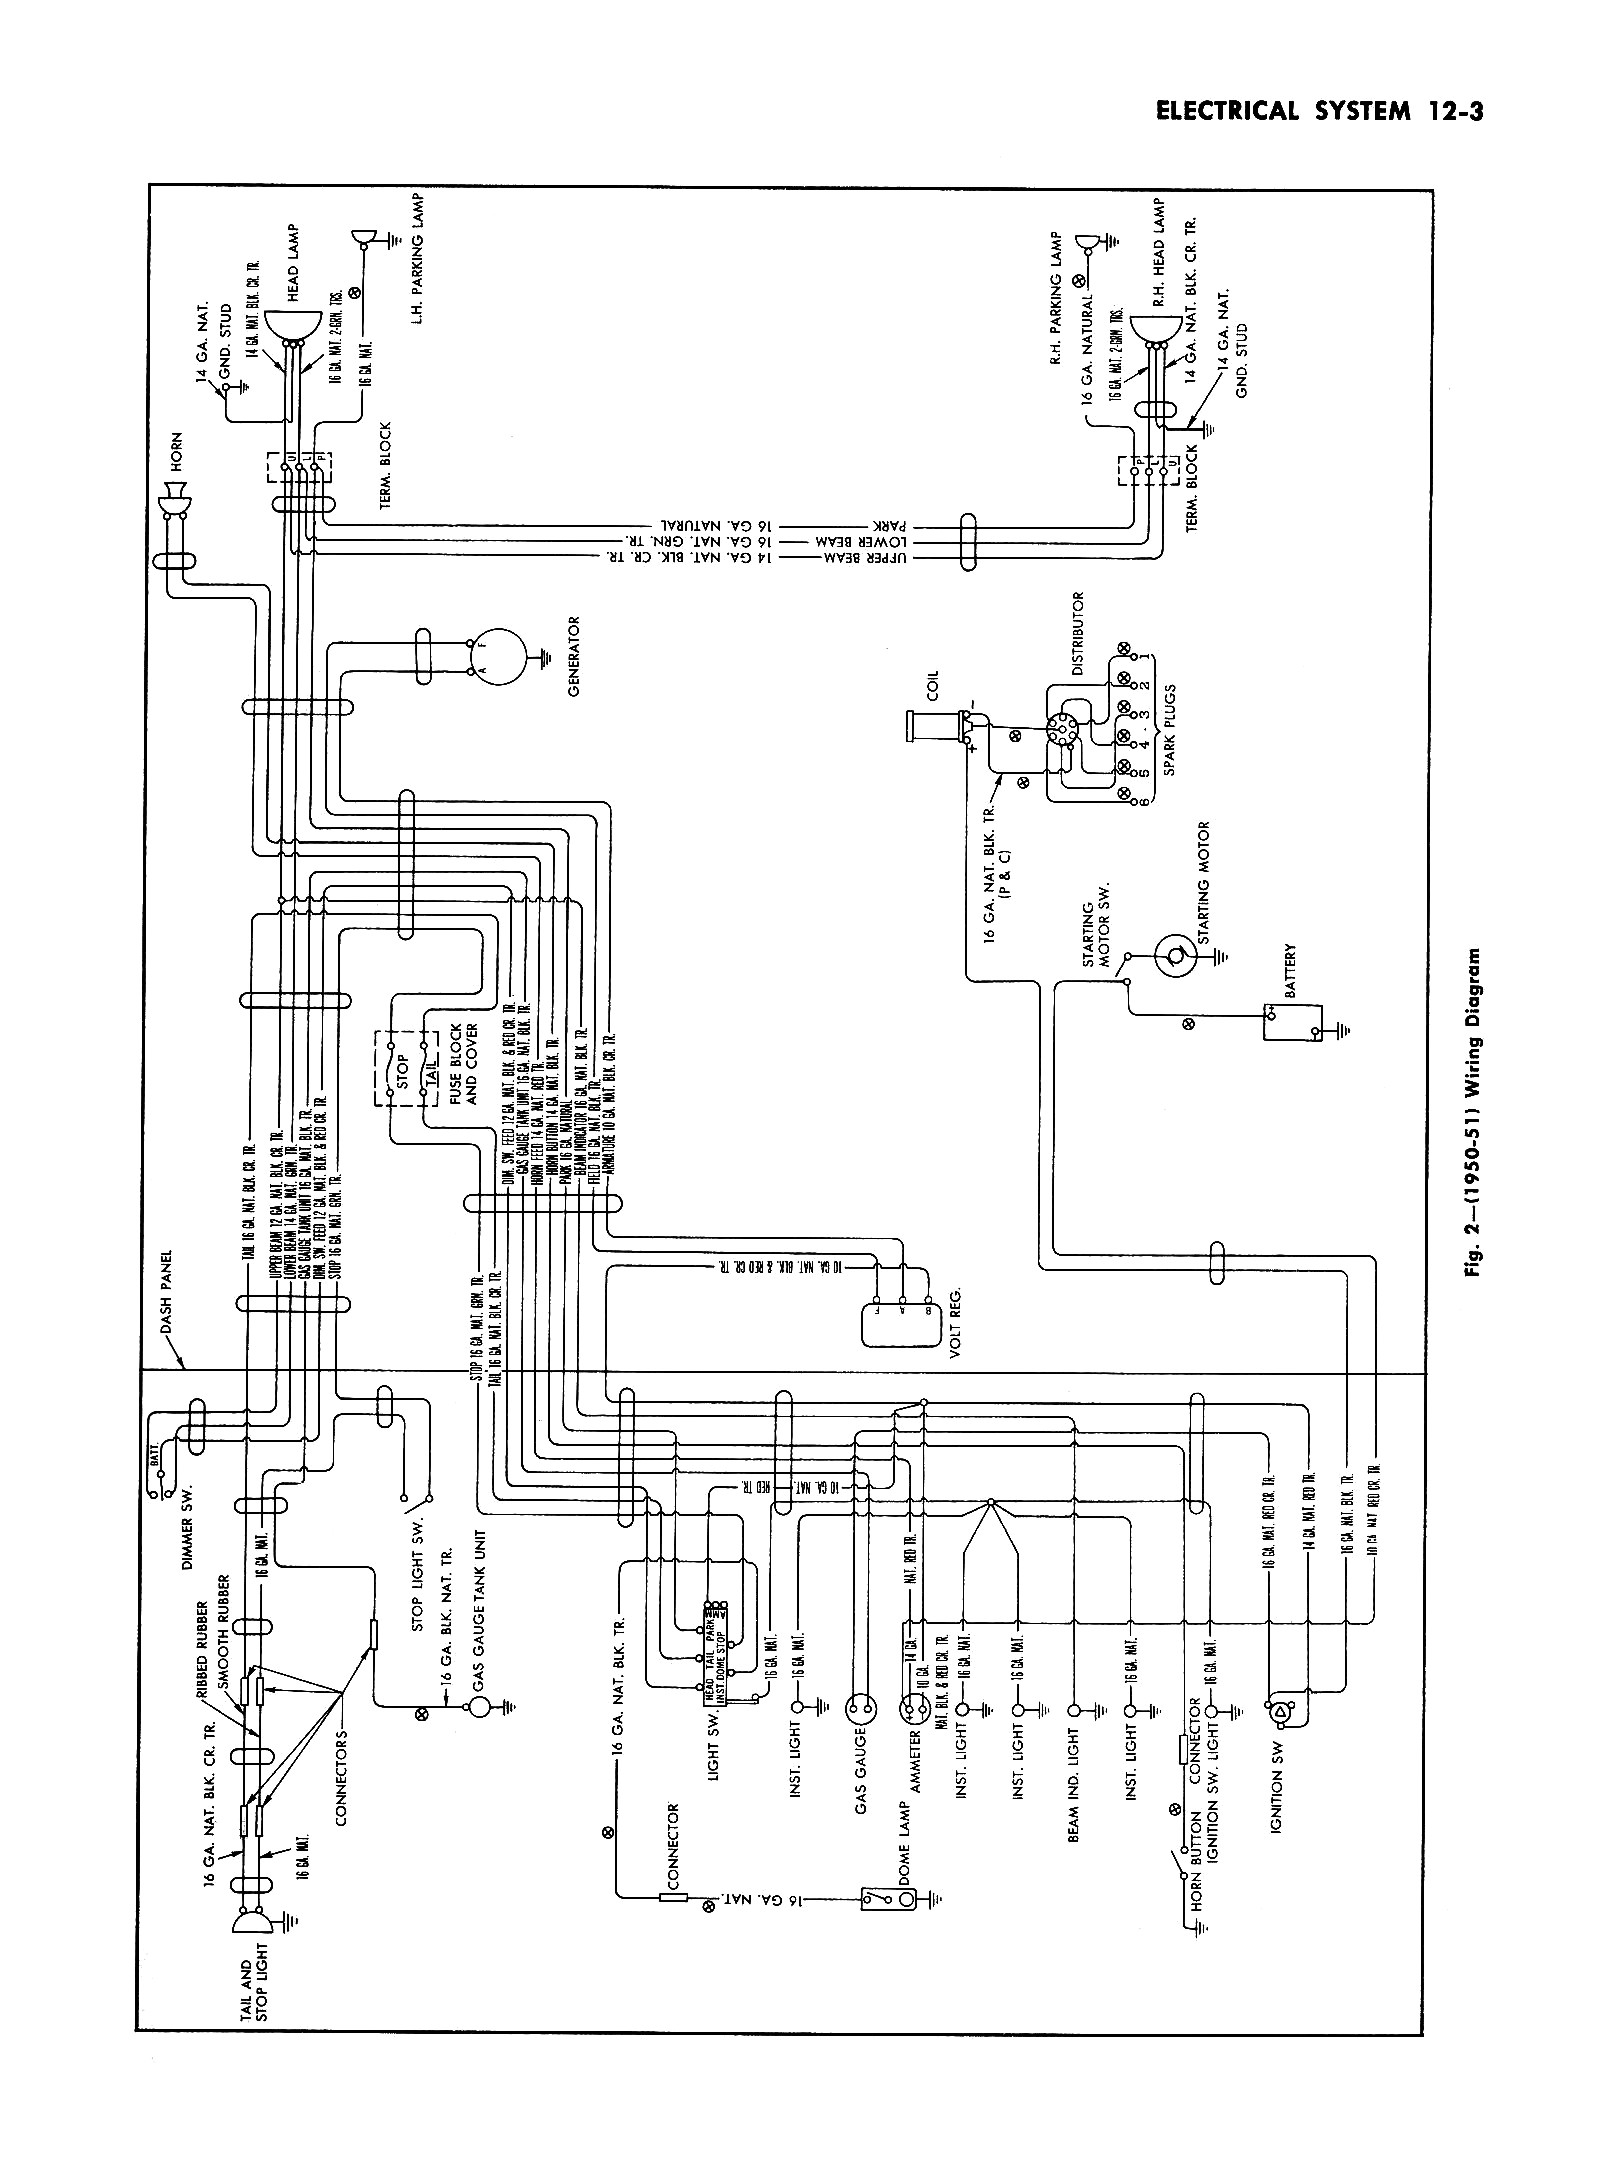 ford f speaker wiring diagram discover your wiring 2001 f150 wiring harness diagram color code